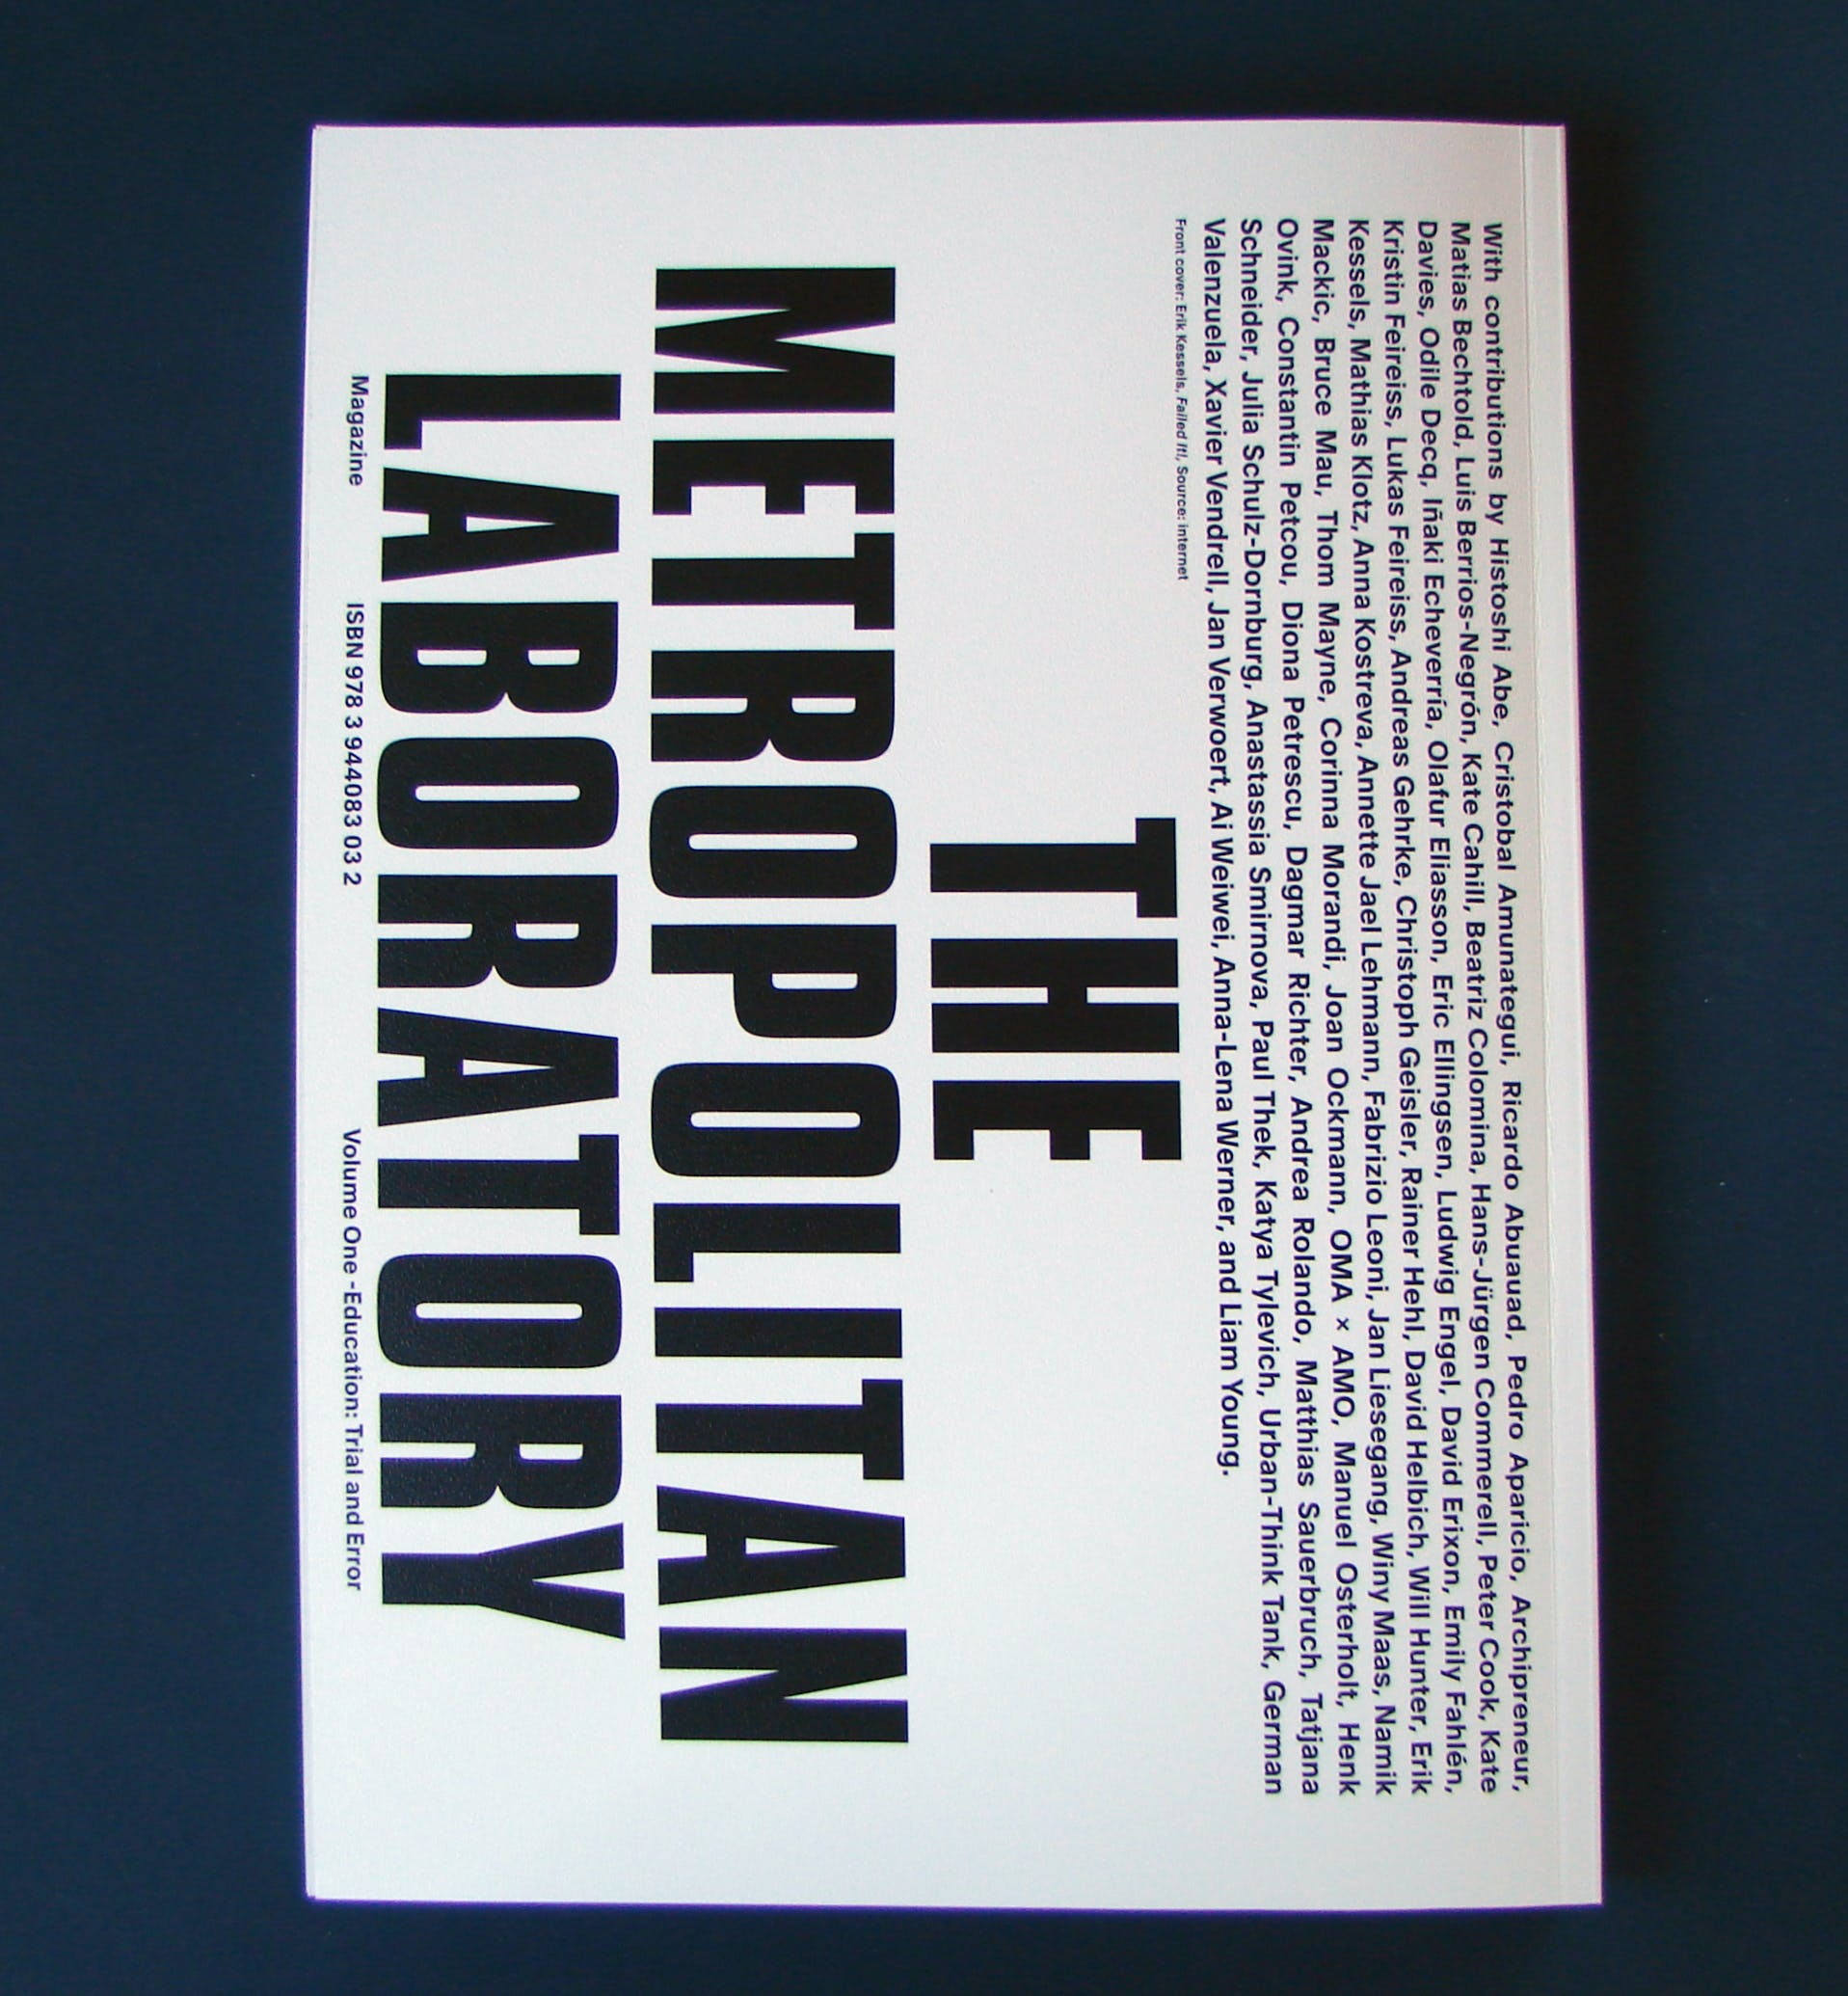 Screen/Print #44: 'Education: Trial and Error' from The